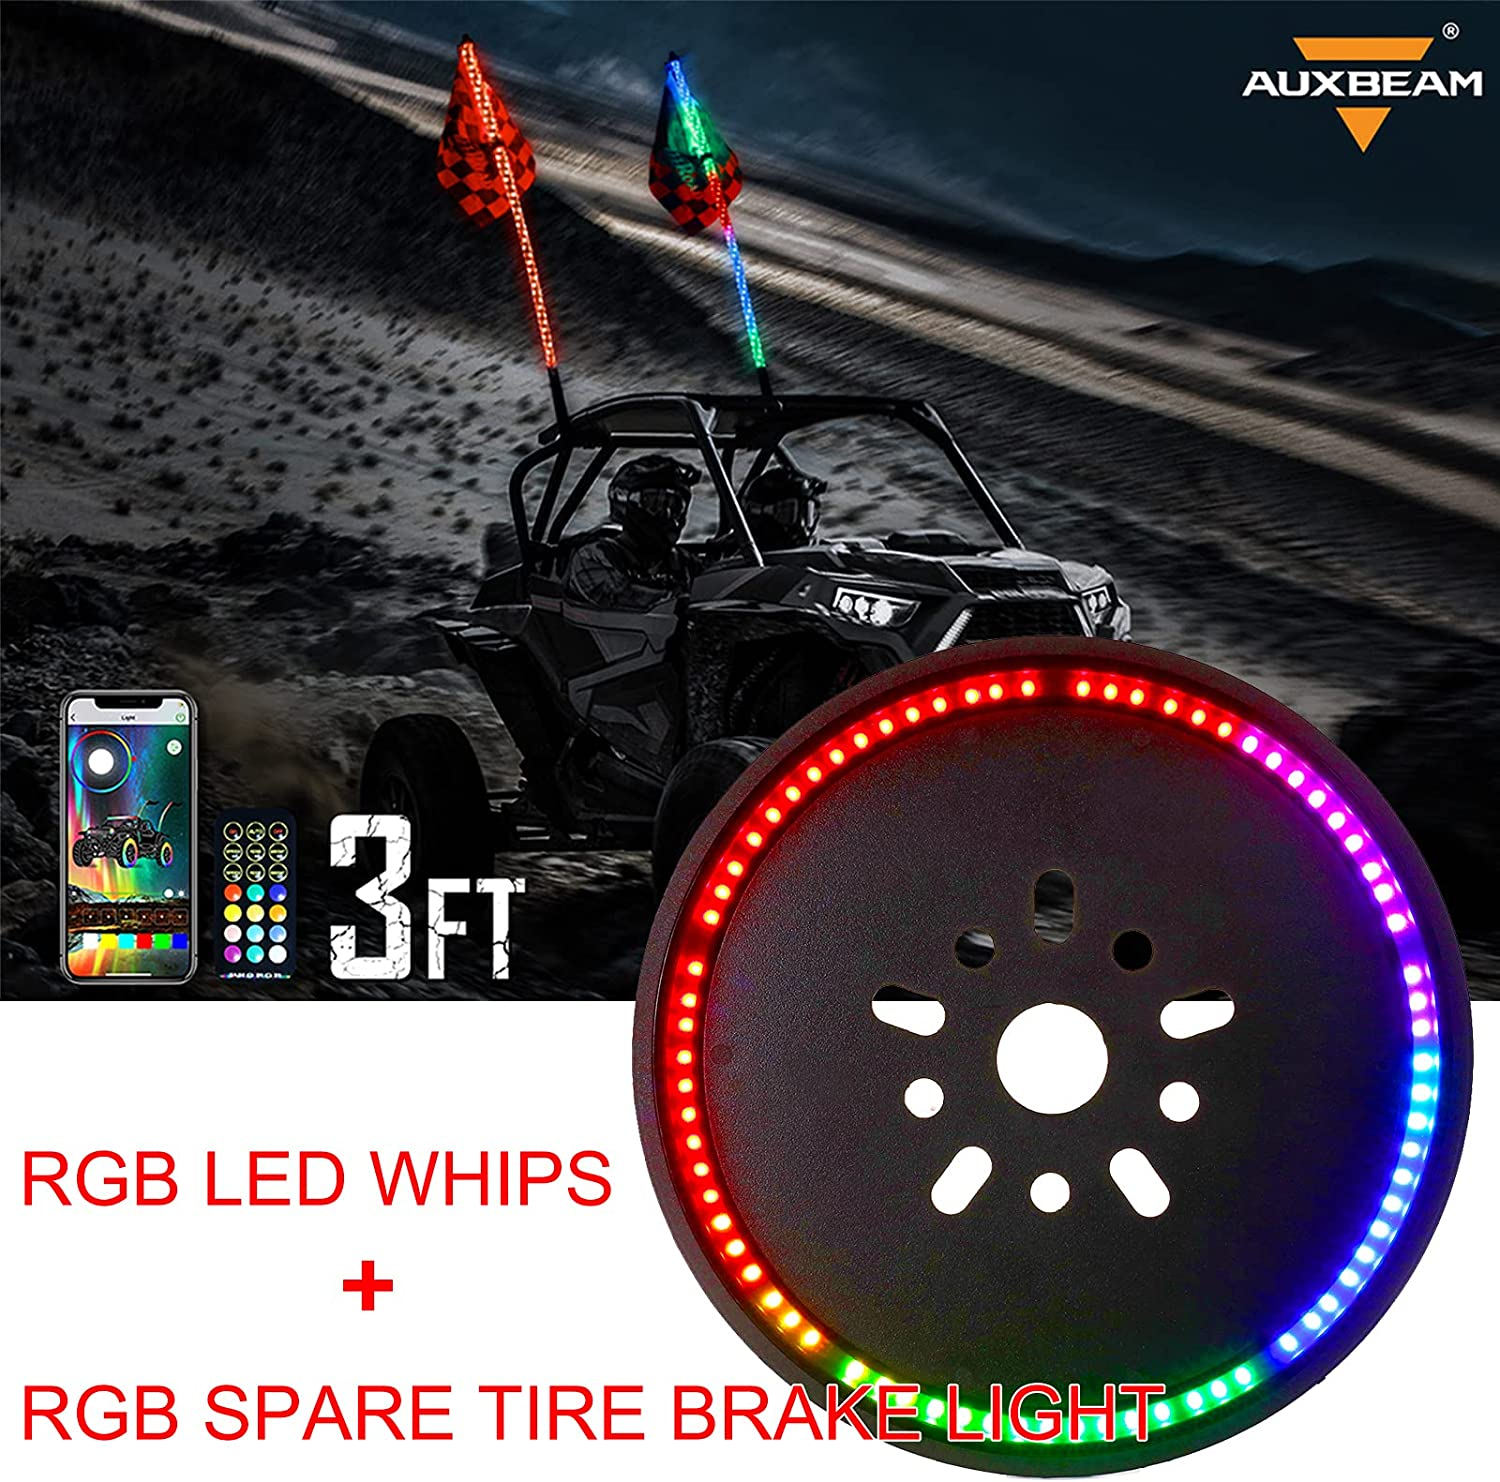 Auxbeam 2Pcs National products 3ft RGB LED Lighted Brake w Signal Turn Whips Outlet sale feature Lig